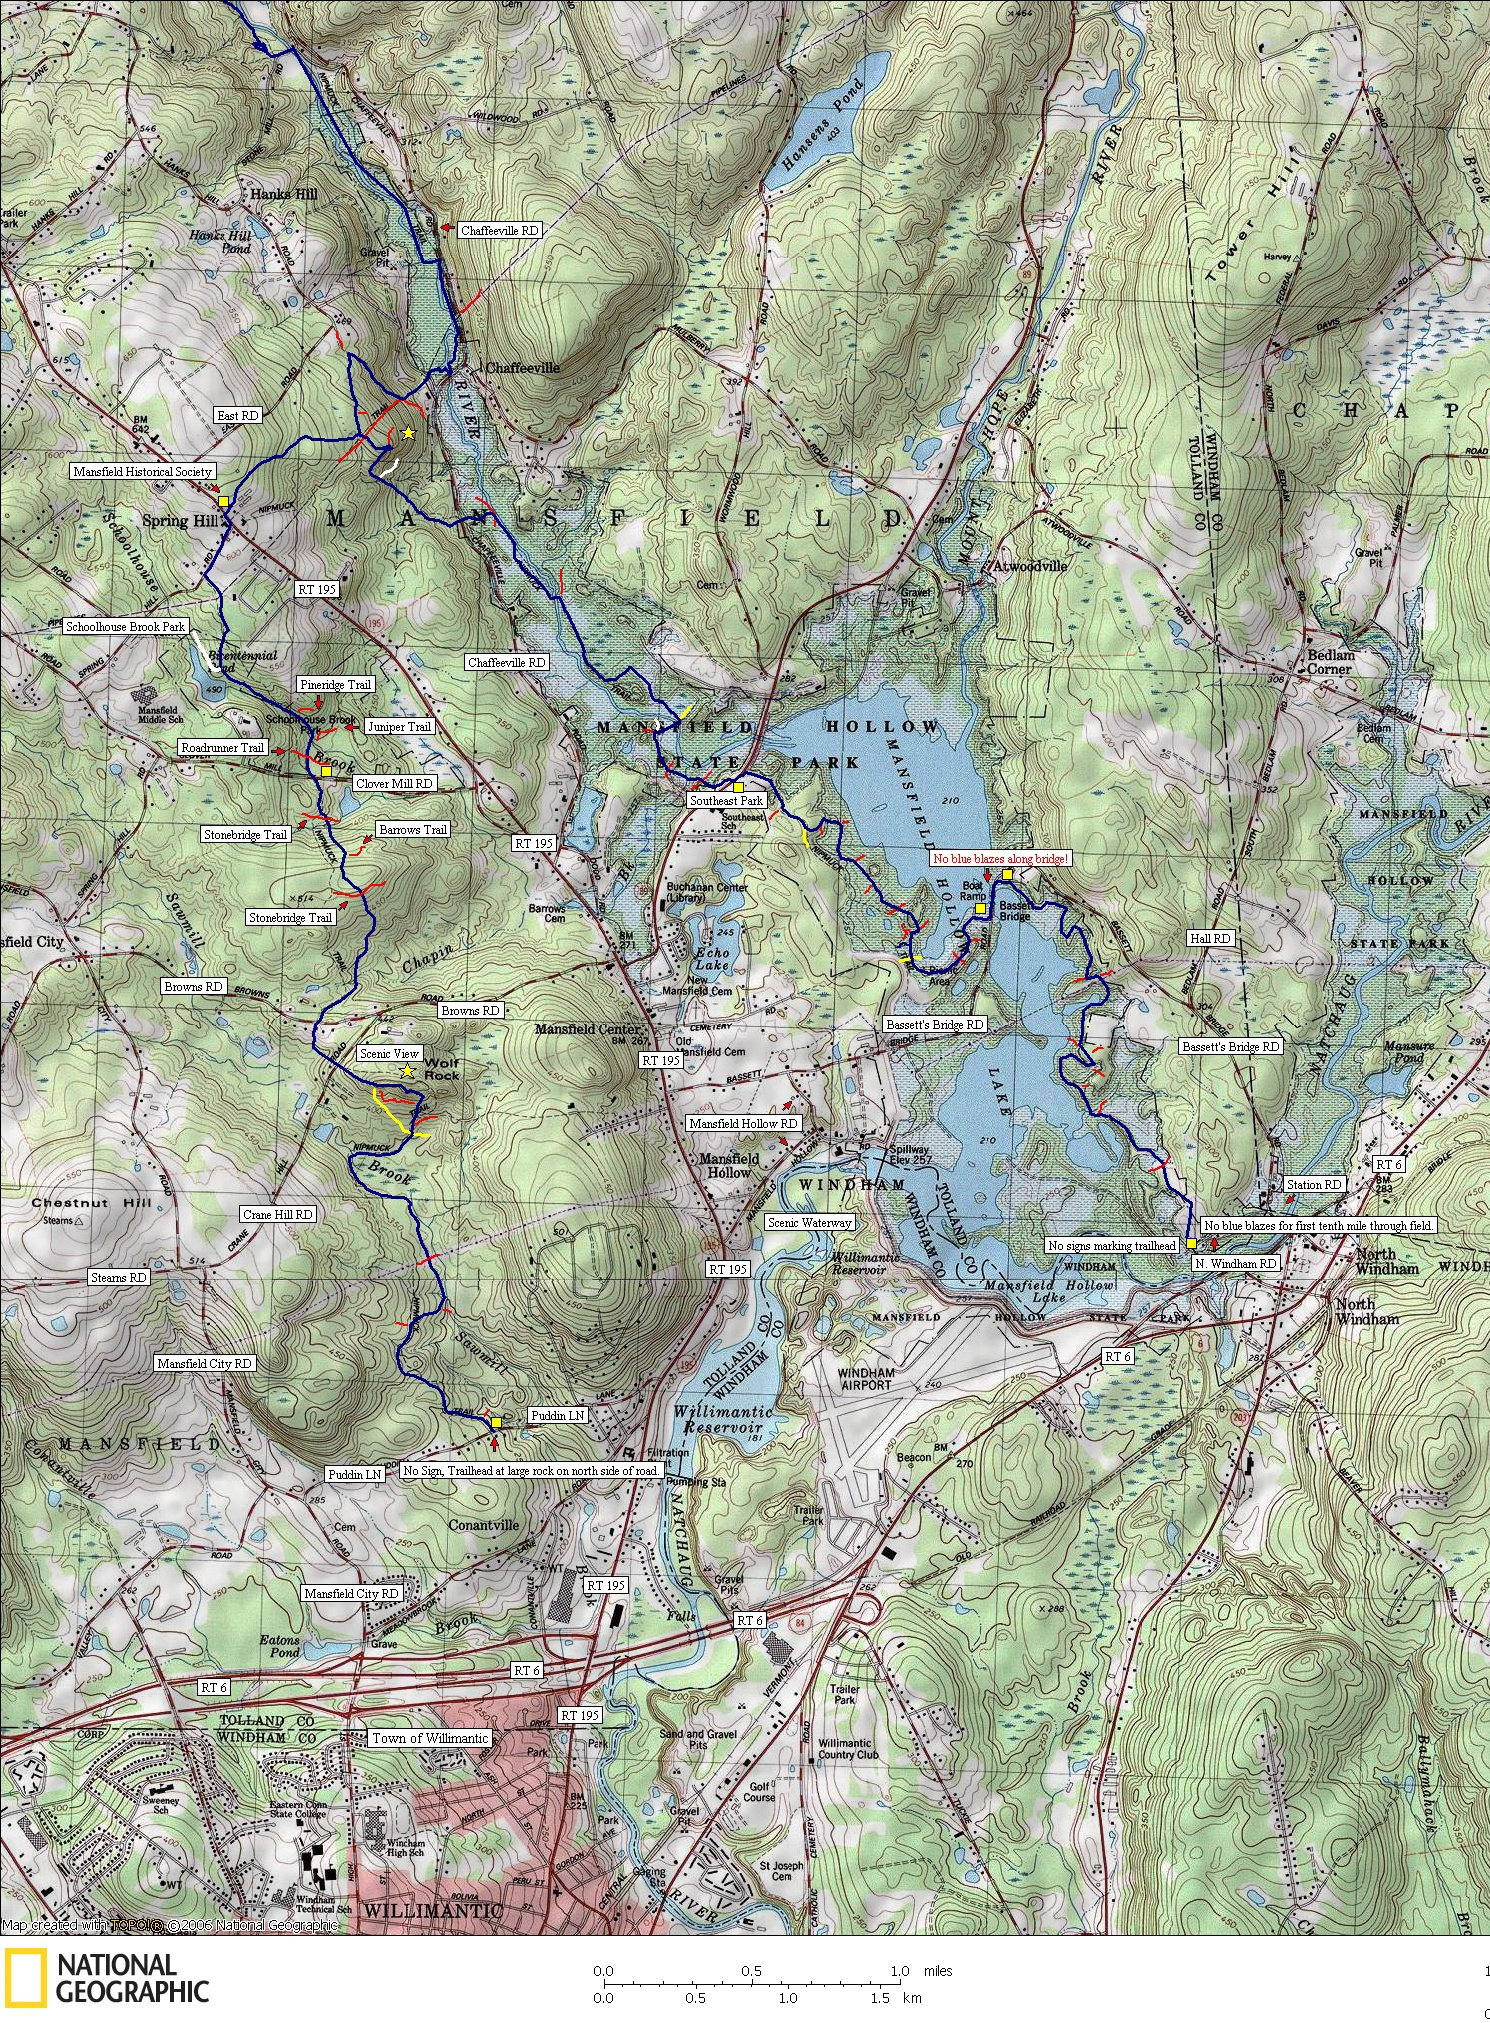 Nipmuck, trail, trails, hike, hiking, map, backpacking, camping, outdoors, blue, blazed